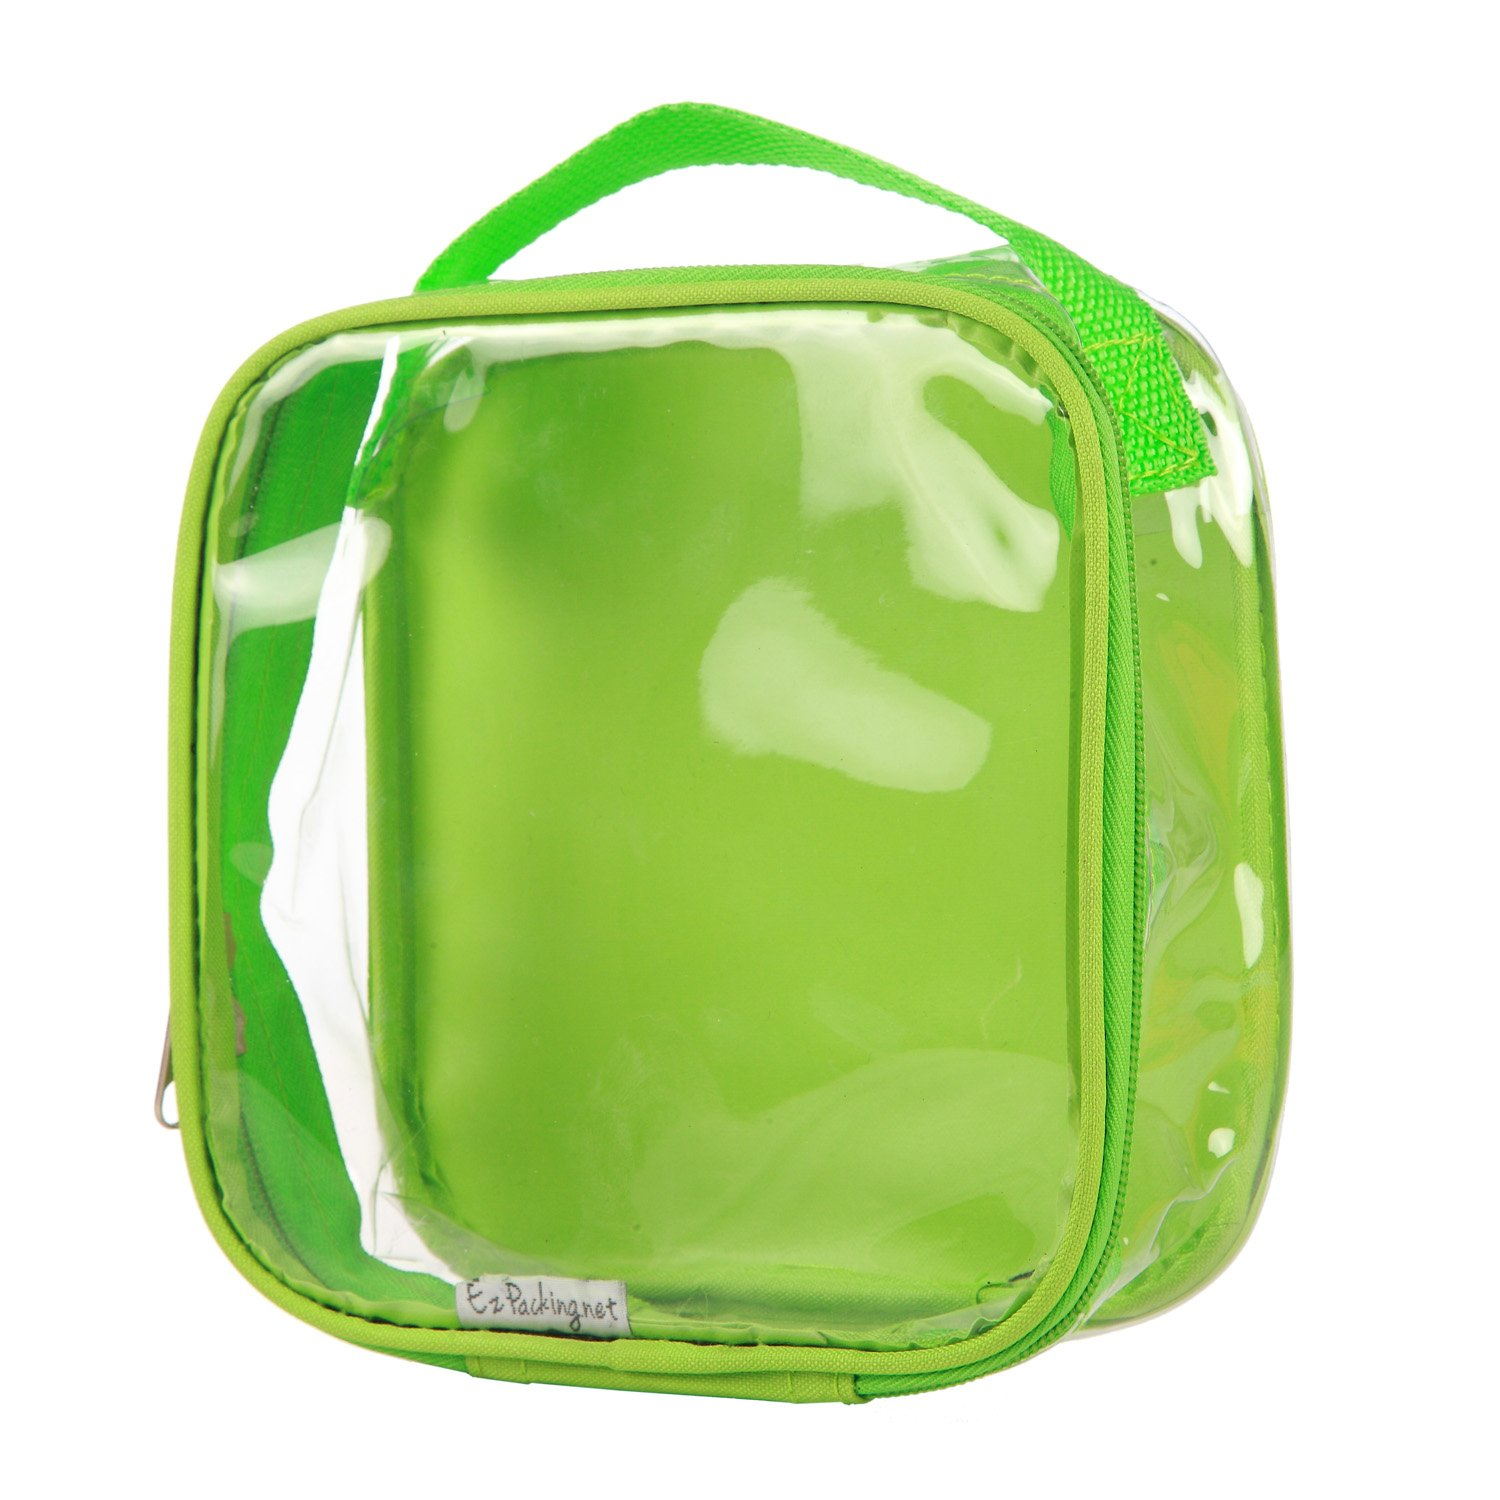 Clear TSA Approved 3-1-1 Travel Toiletry Bag/Transparent See Through Organizer (Lime Green)